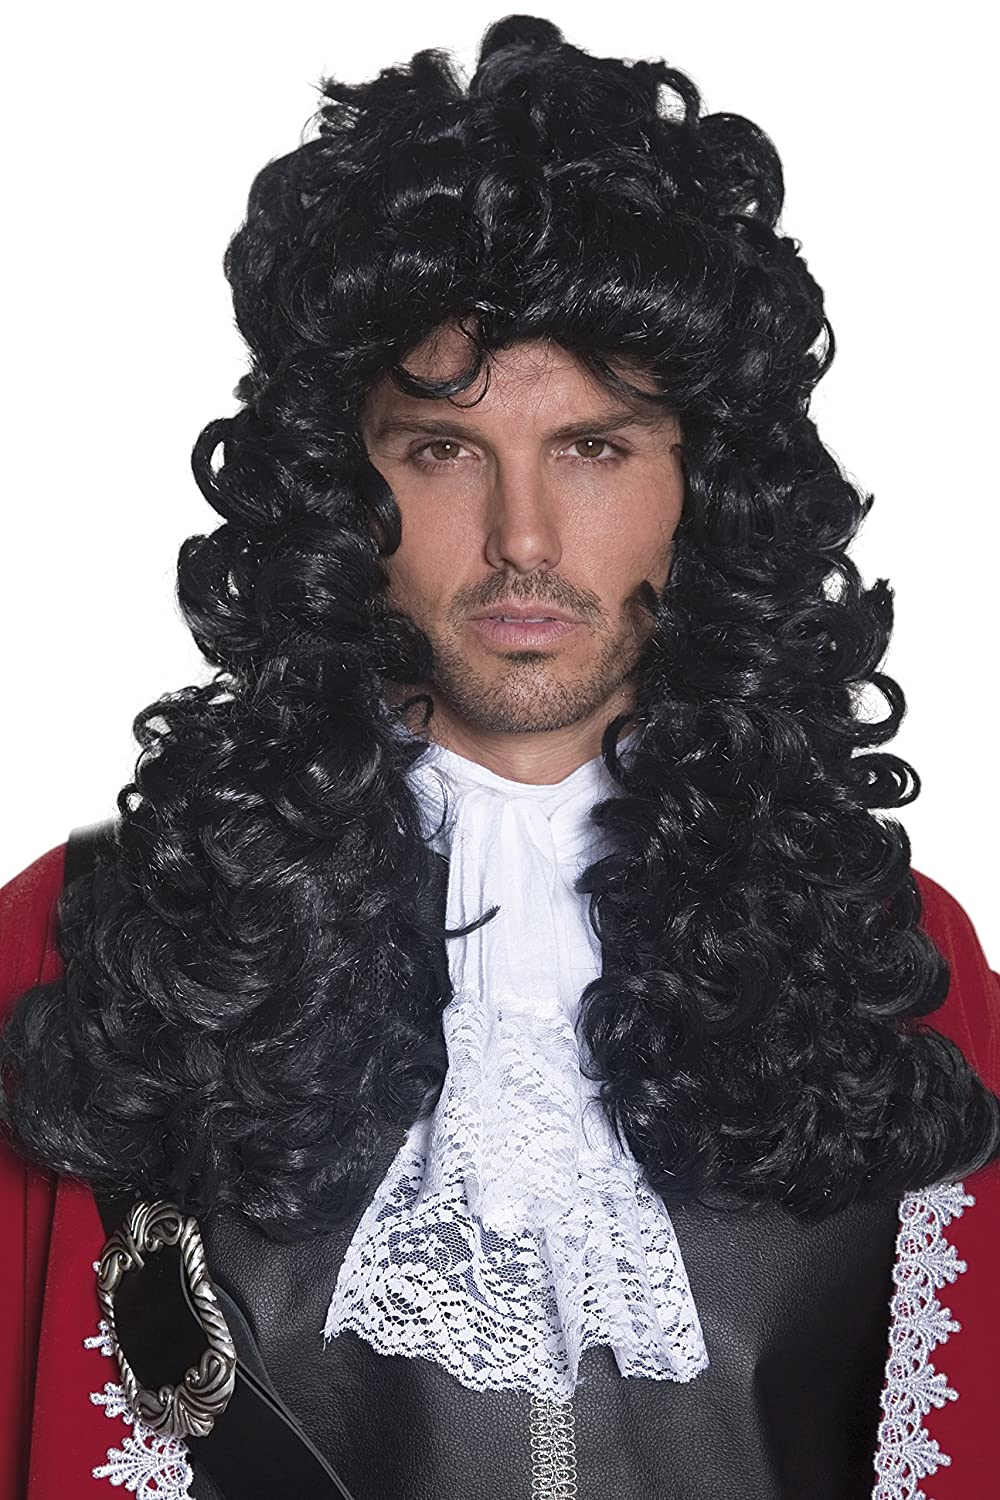 Smiffys Men's Pirate Captain Wig Long and Curly One Size 5020570420416 RH Smith & Sons LTD